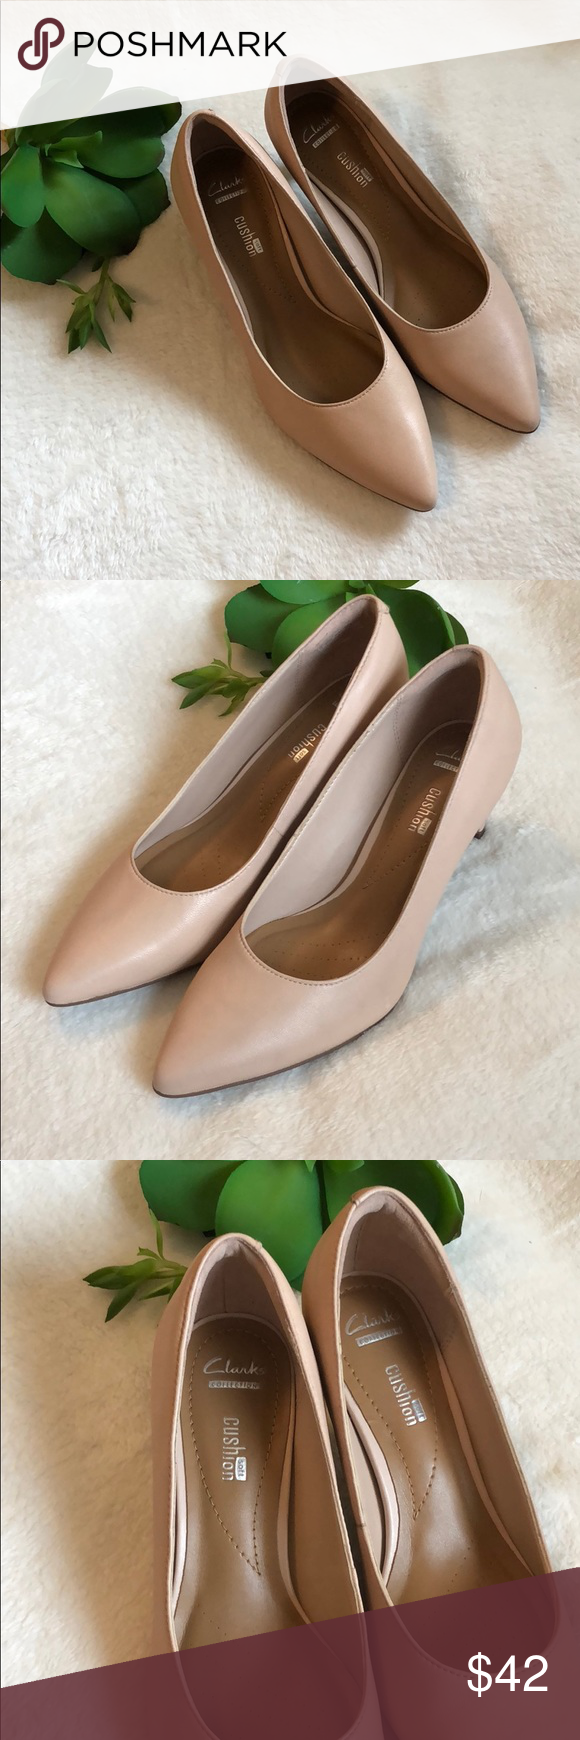 220a2d9c8d5 NWT Clark s Crewso Wick Nude Pink Pumps Size 6 NWT Clark s Crewso Wick Nude  Pink Pumps